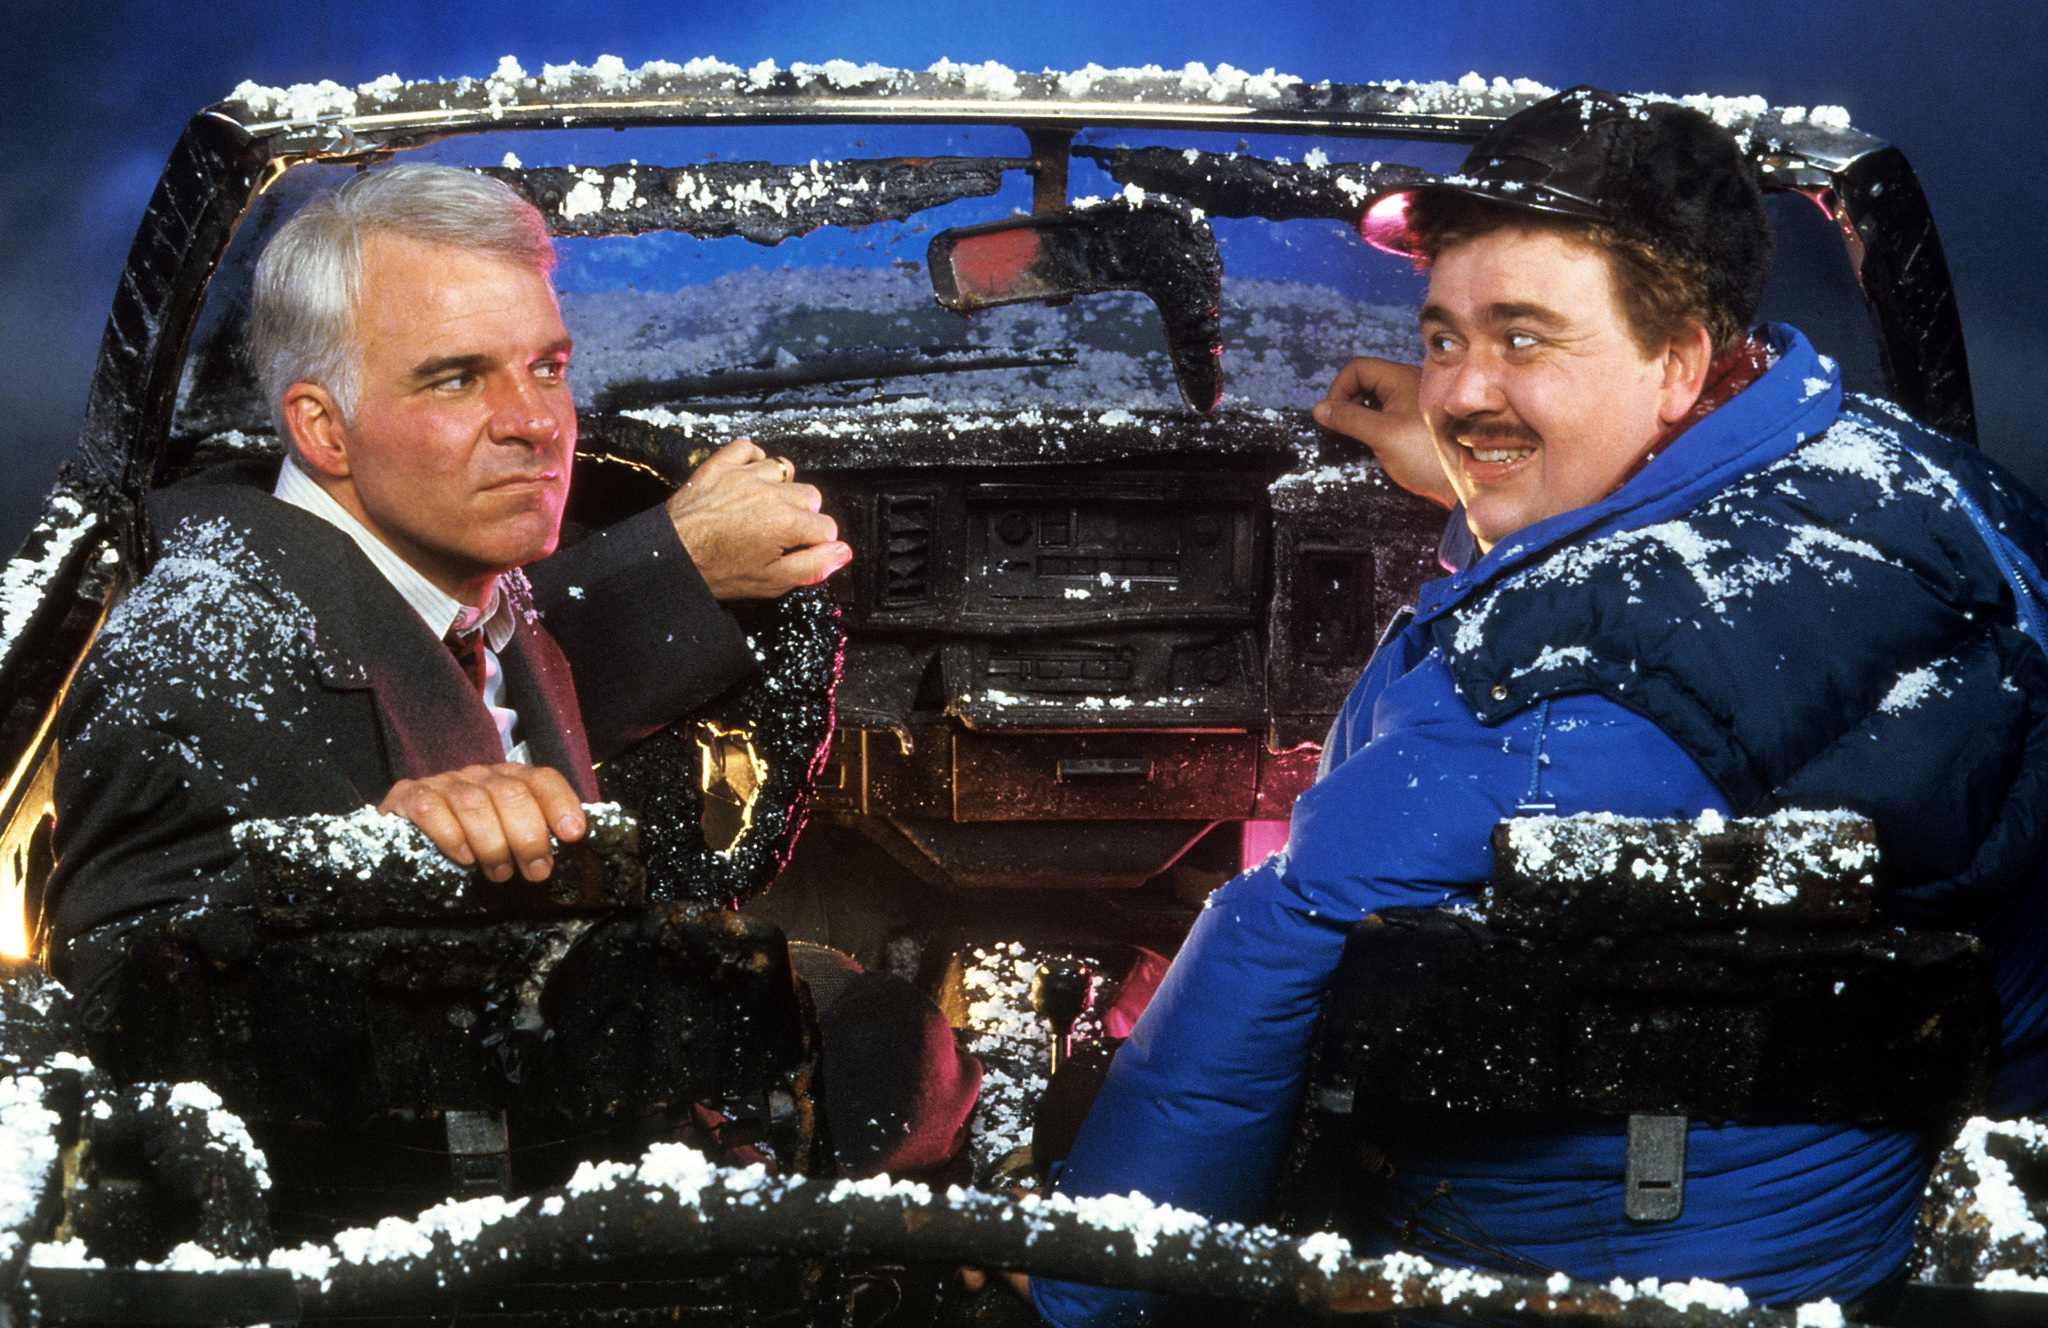 streaming classic road trip movies imdb steve martin and john candy in planes trains automobiles 1987